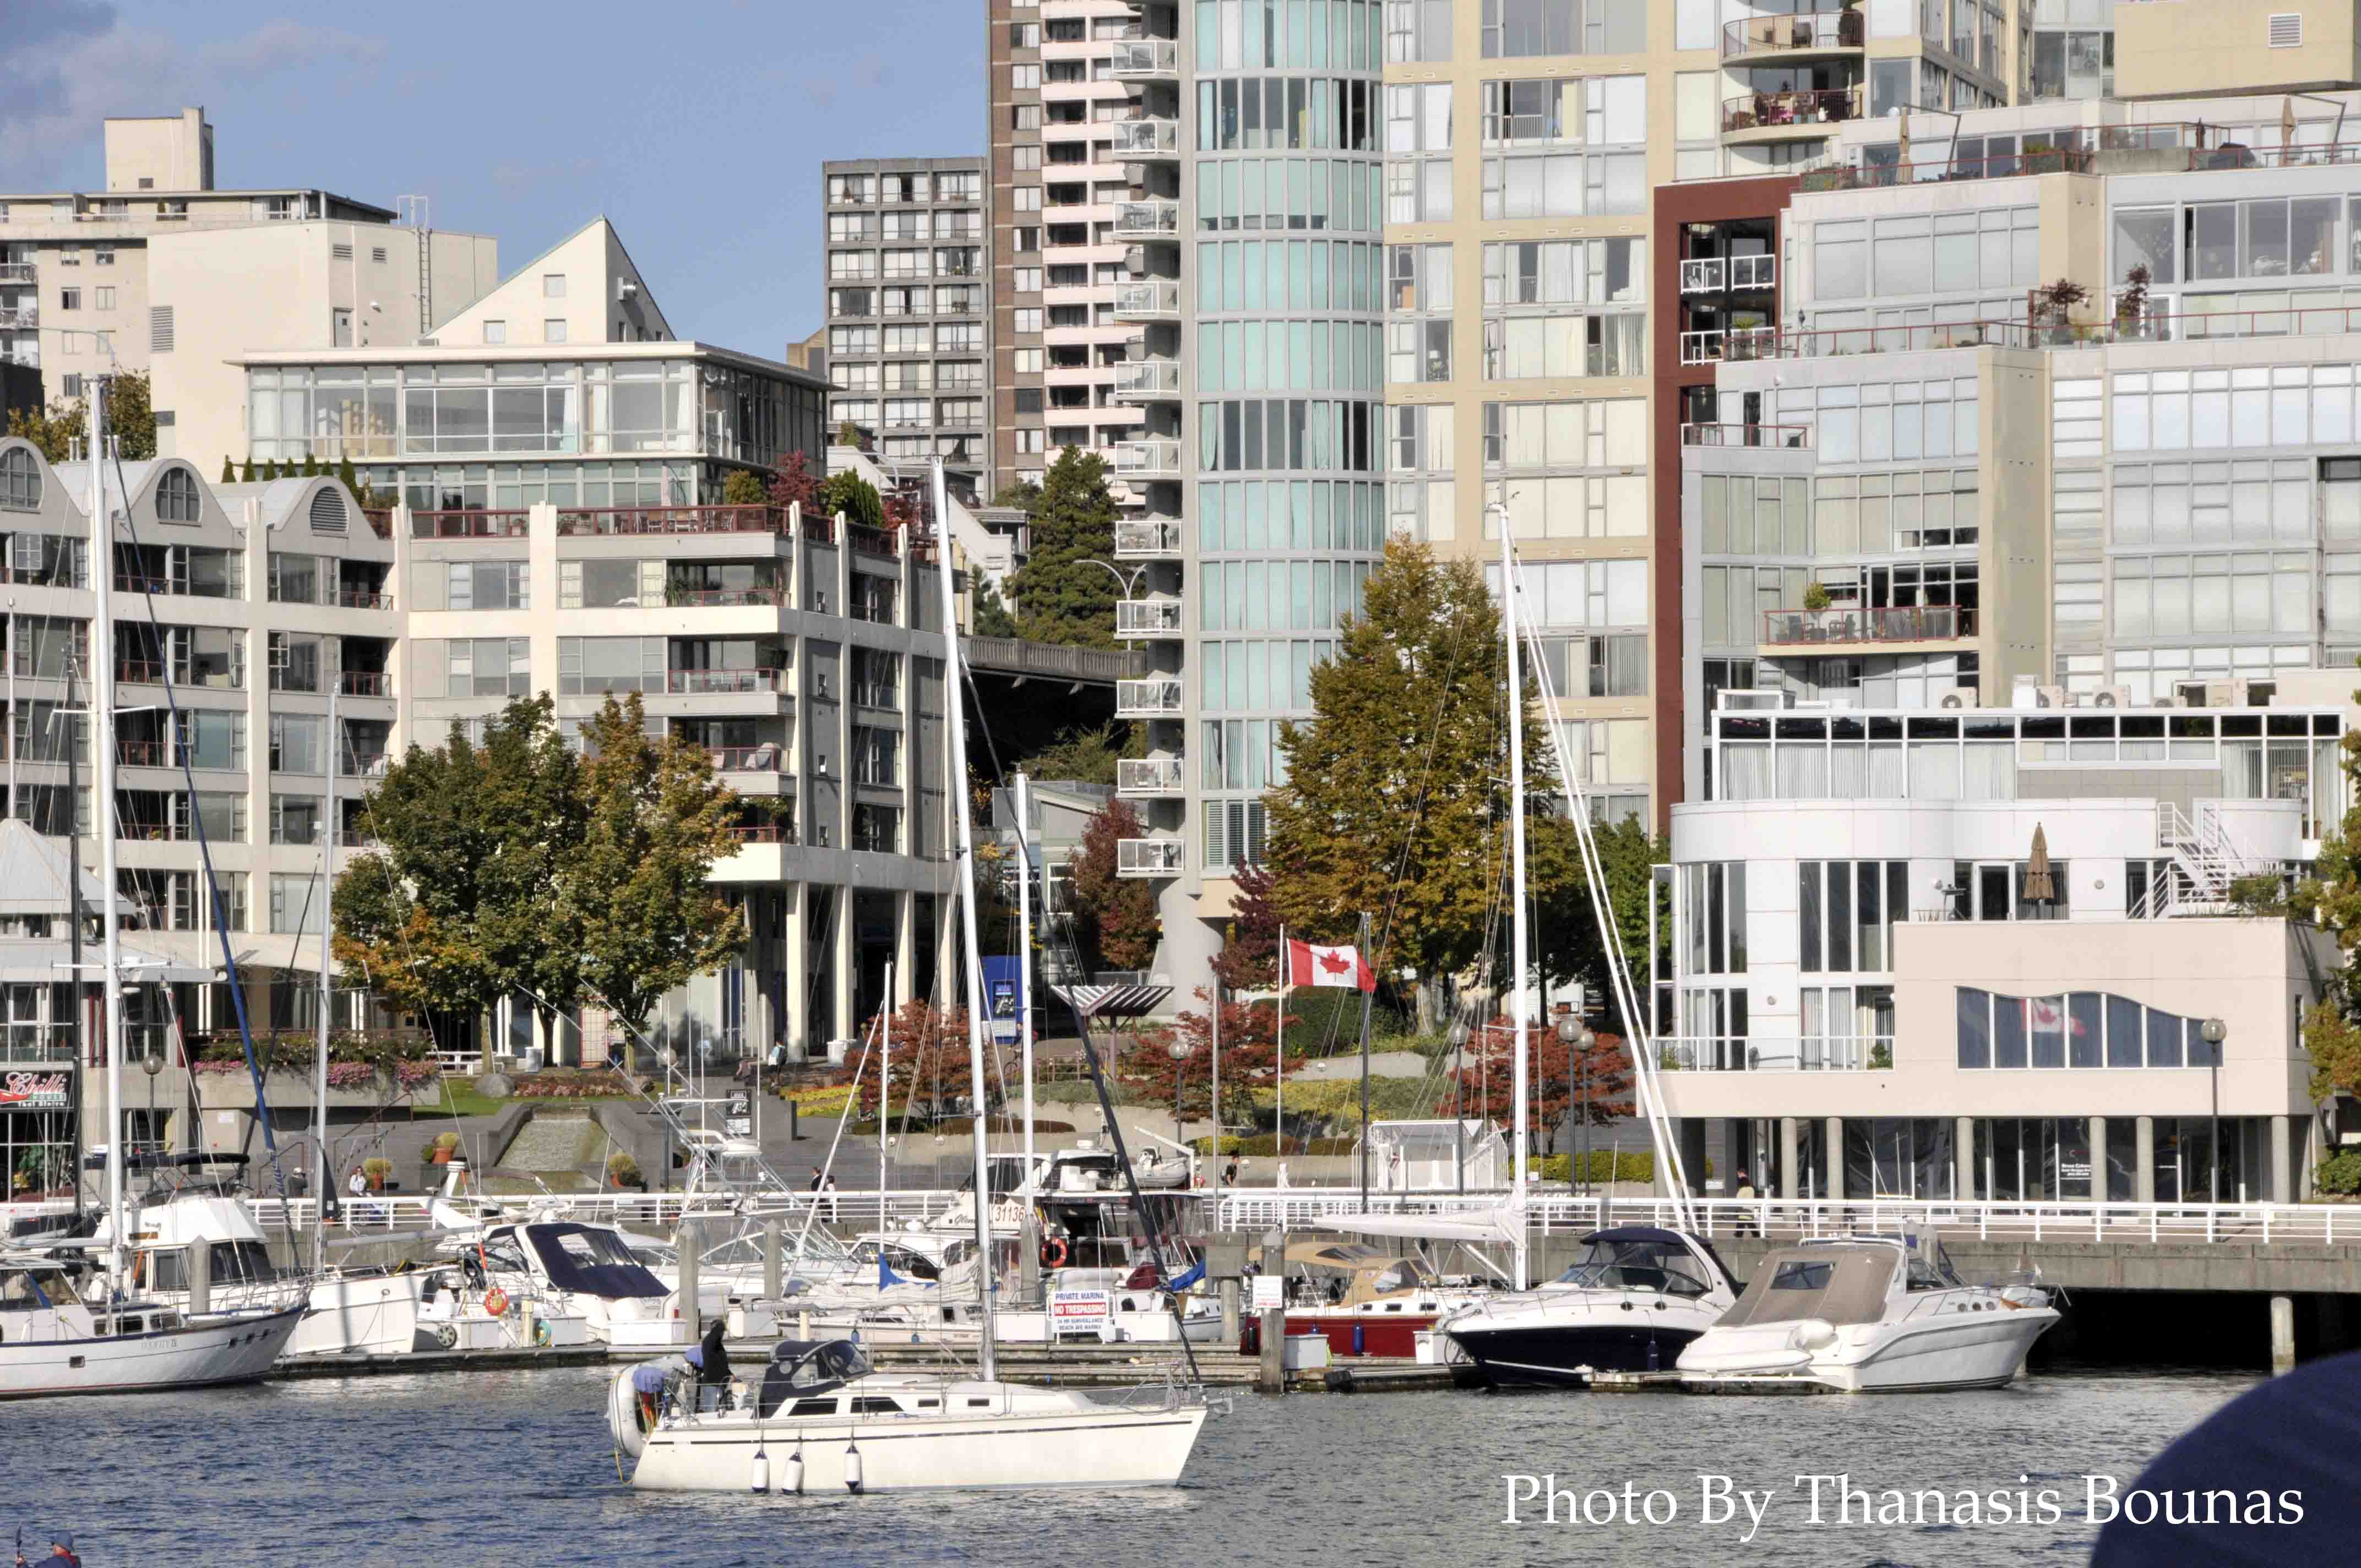 13 Granville Island Beautiful British Columbia Photo By Thanasis Bounas